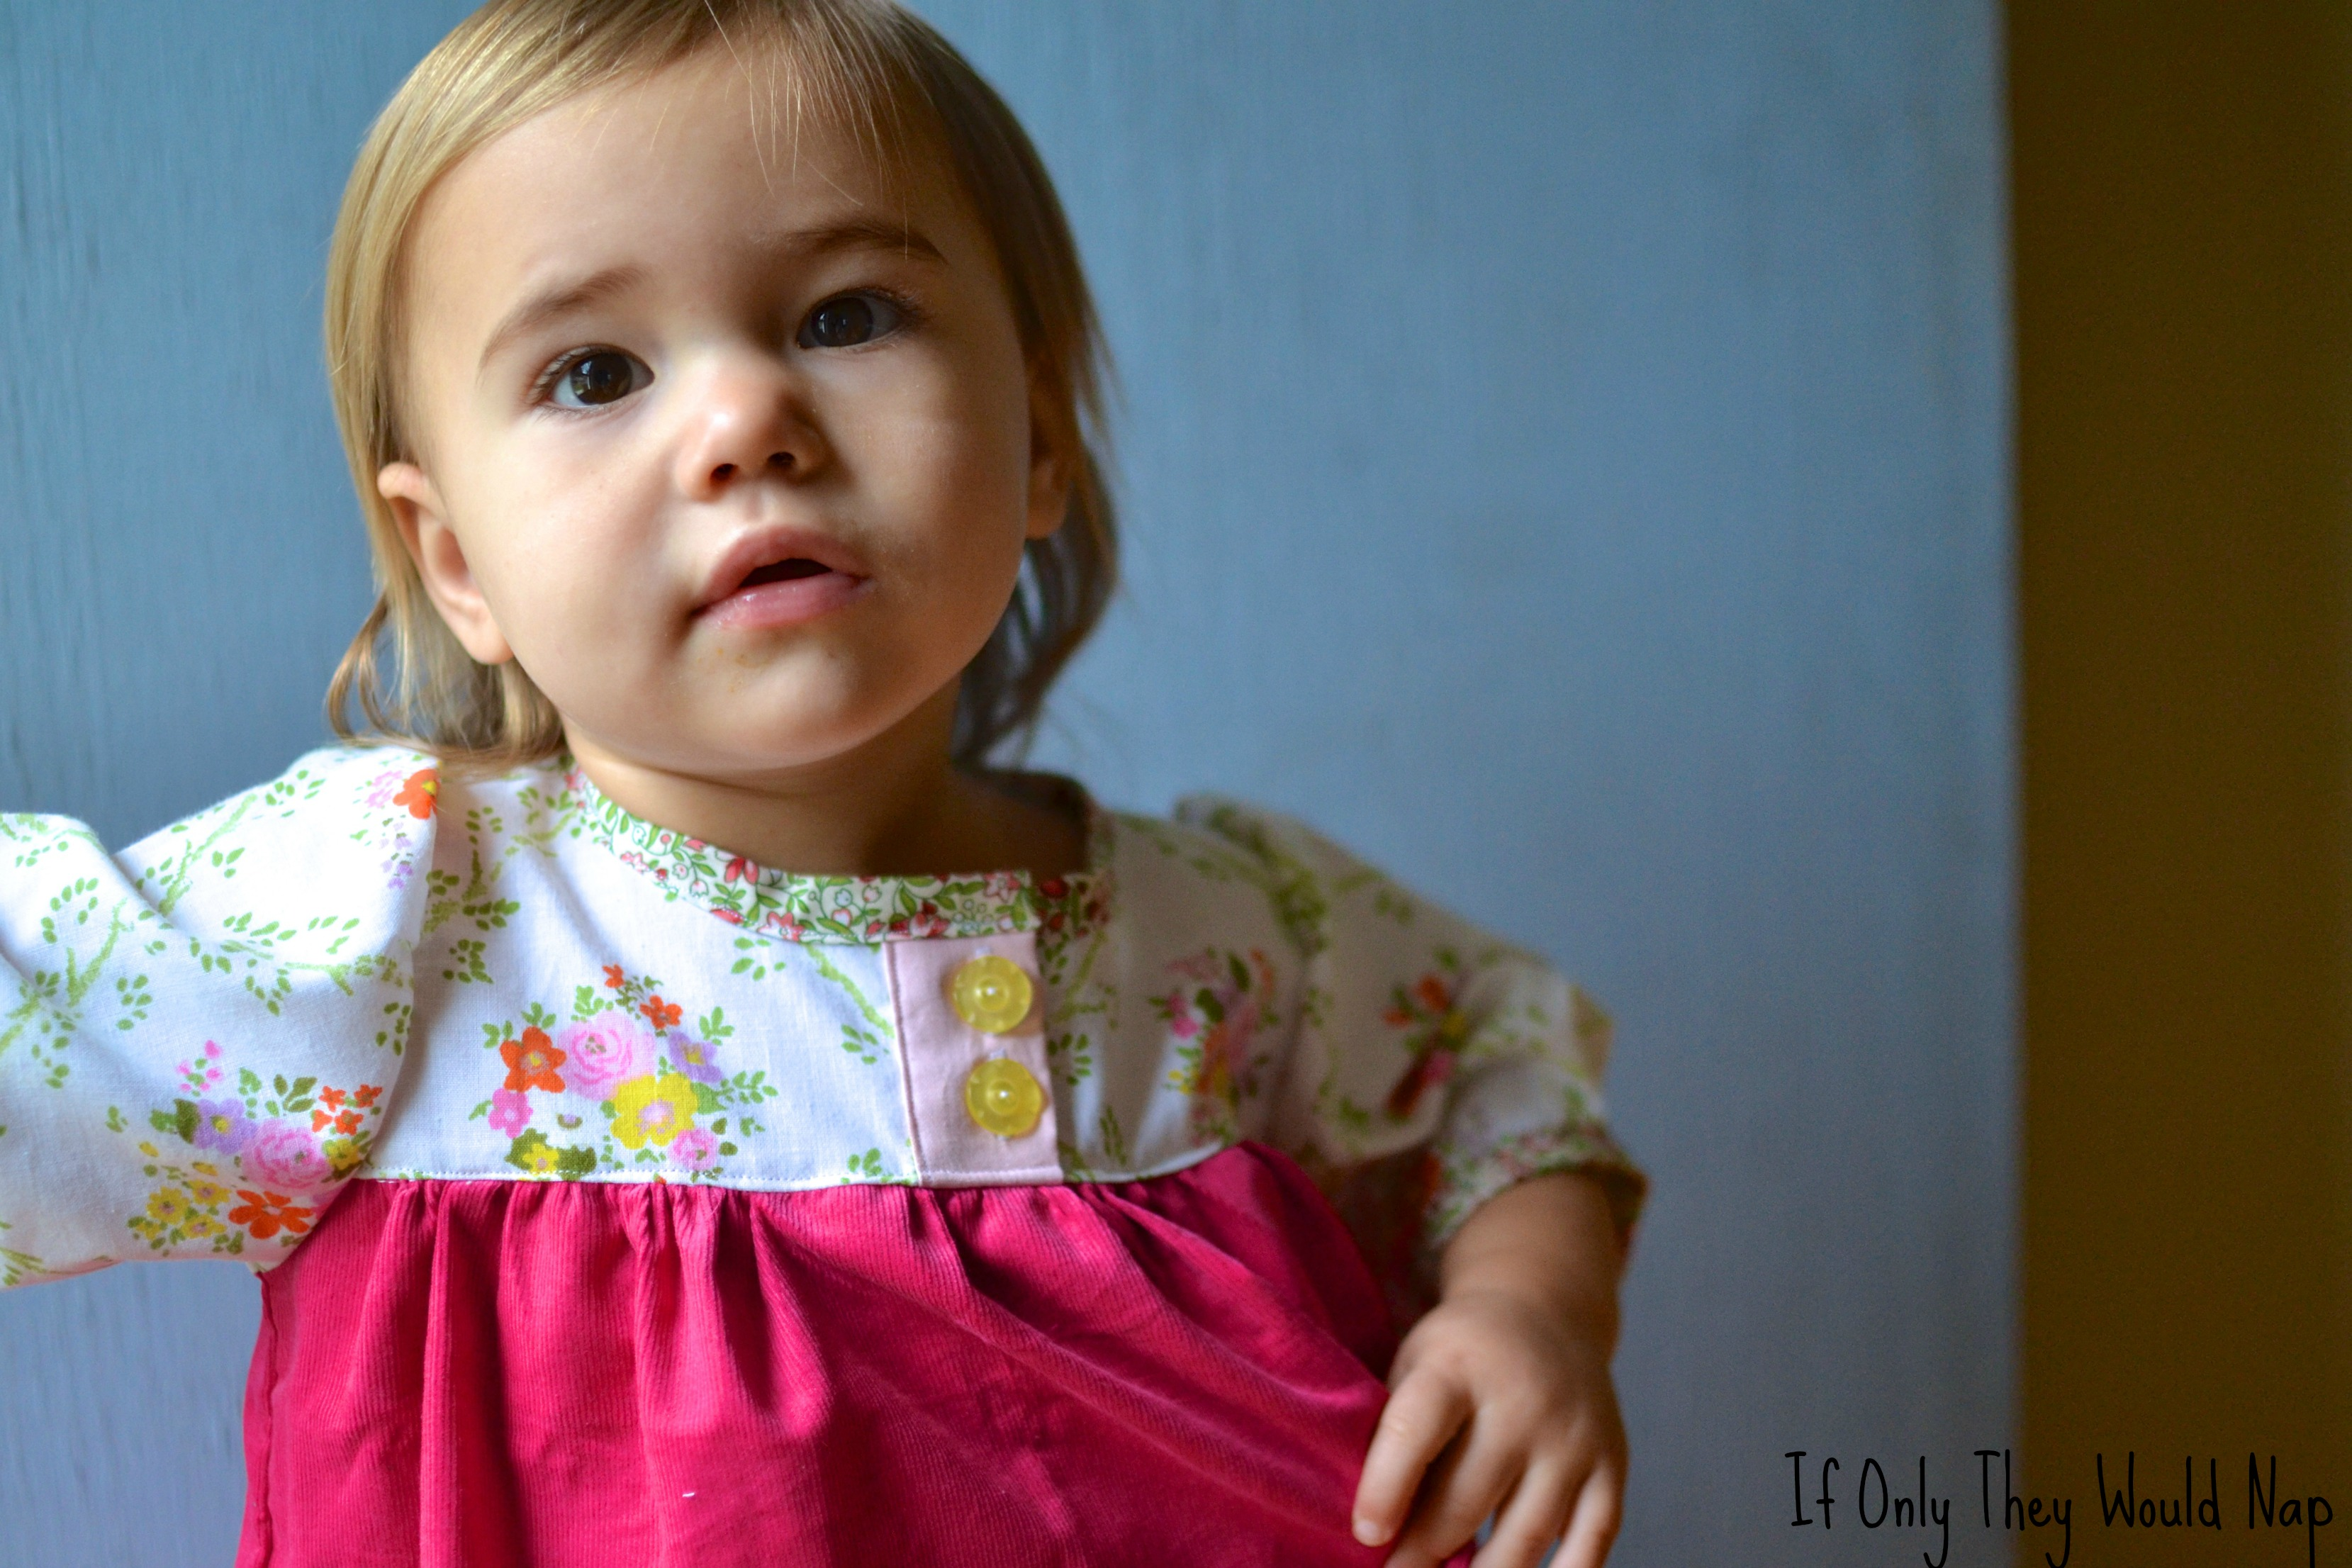 Vintage Fabric Olivia Dress  If Only They Would Nap